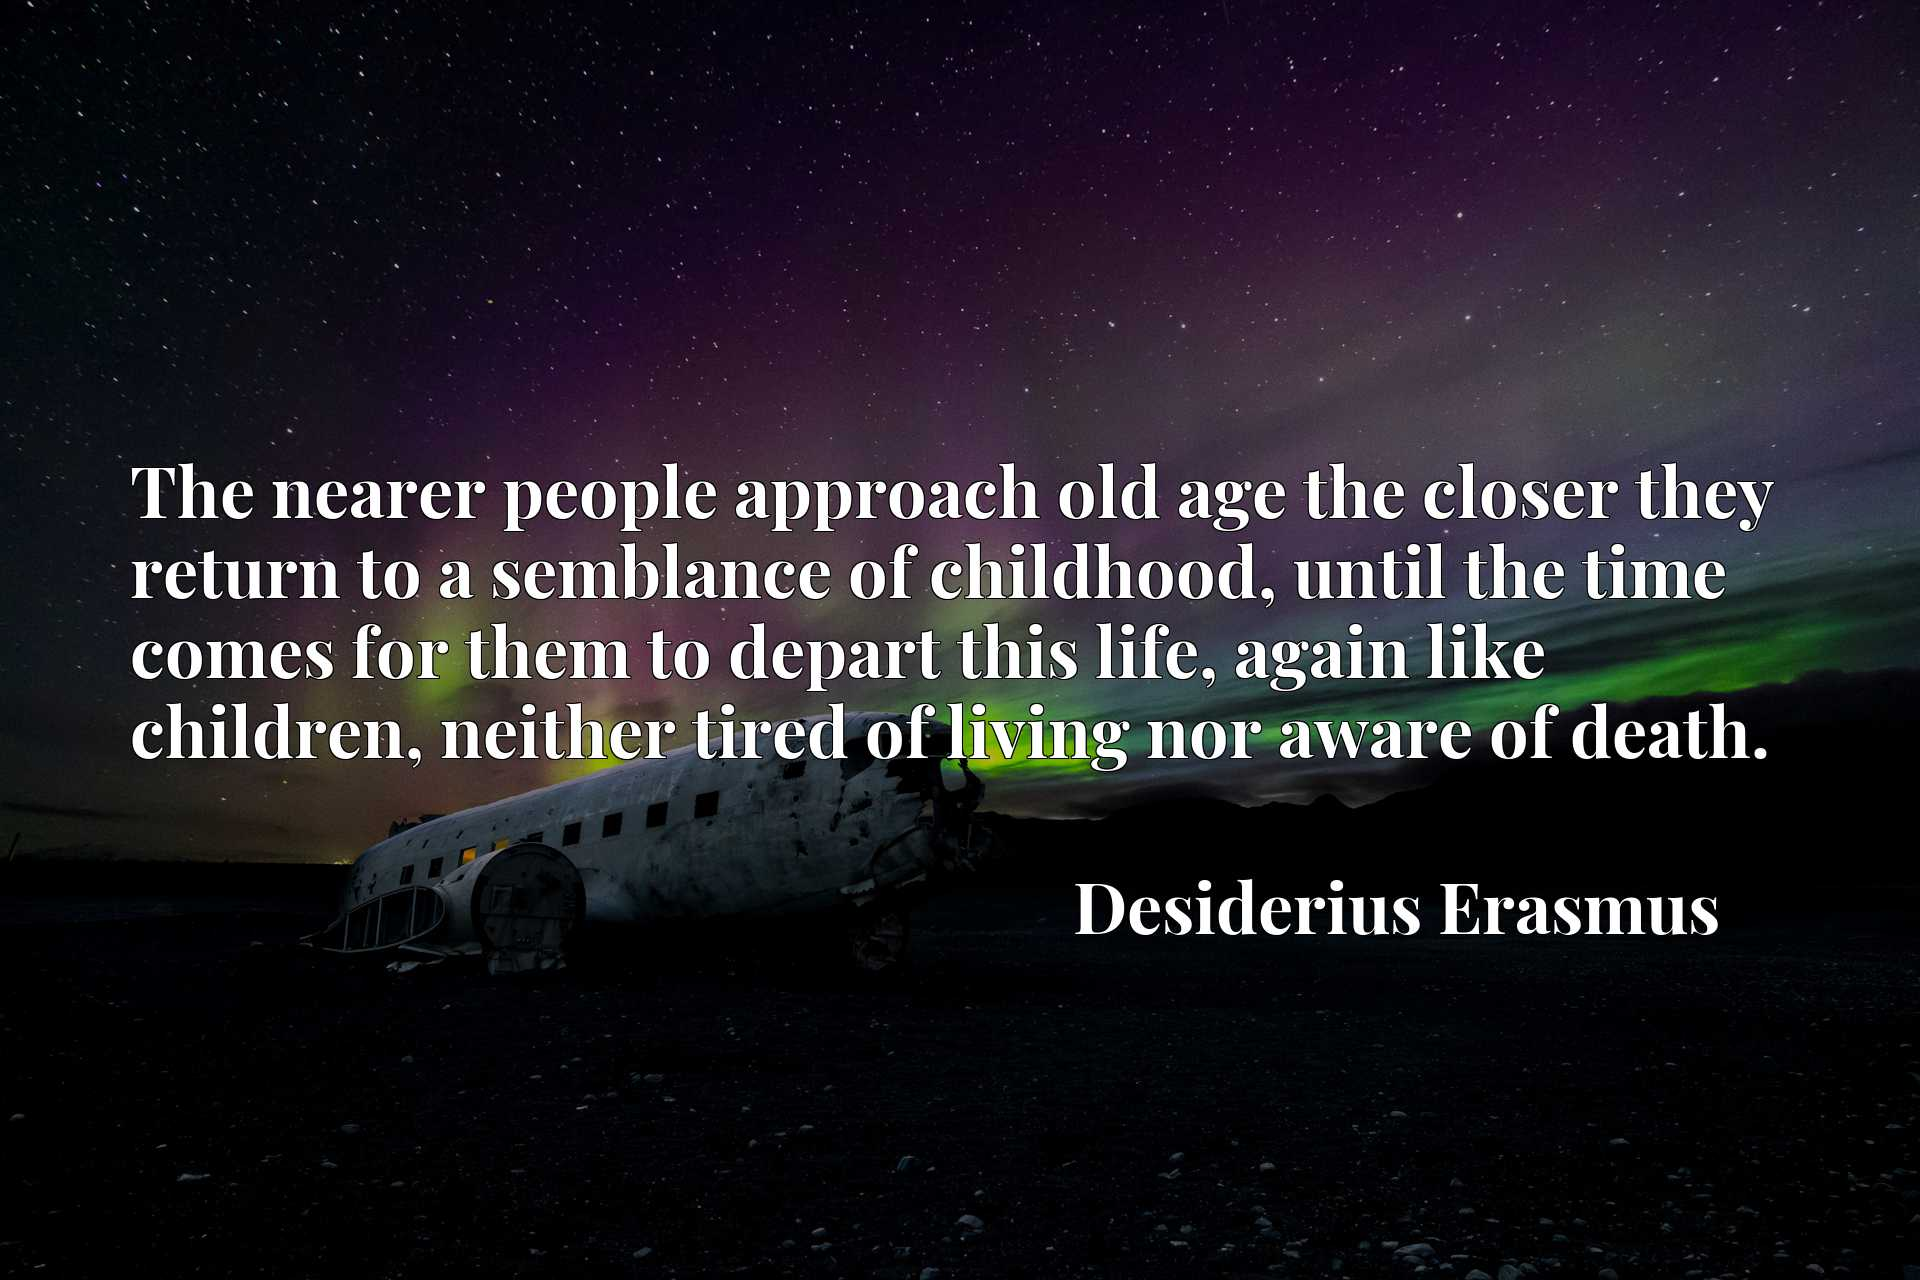 The nearer people approach old age the closer they return to a semblance of childhood, until the time comes for them to depart this life, again like children, neither tired of living nor aware of death.